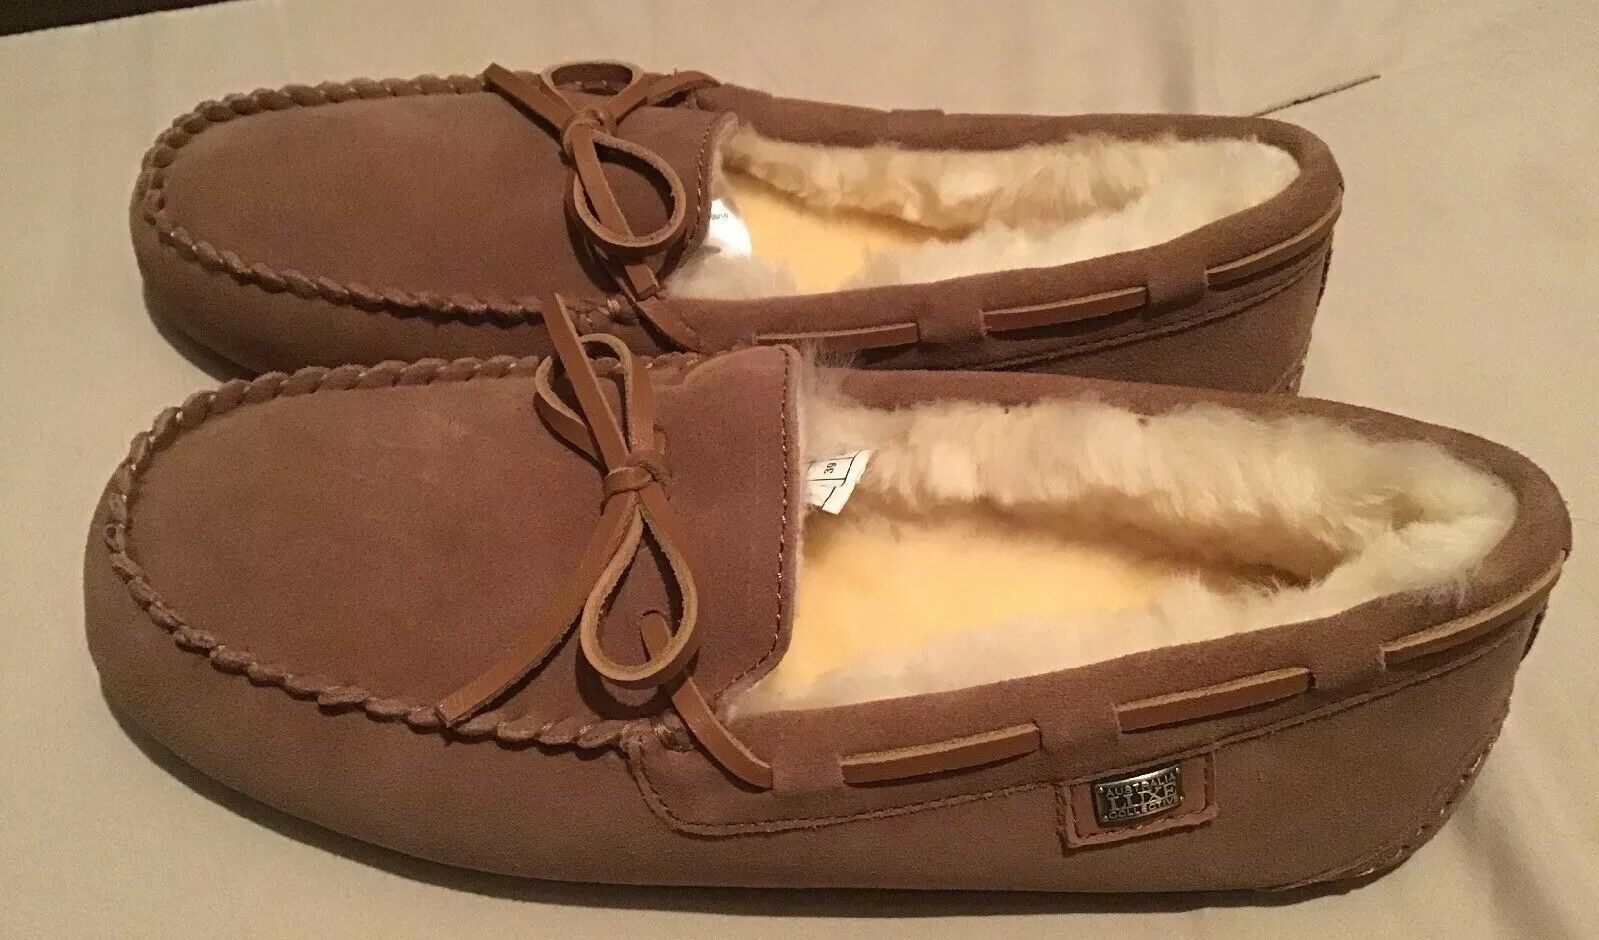 NEW AUSTRALIA LUXE COLLECTION PROST SUEDE MOCCASIN SLIPPER-CHESTNUT- SIZE 8